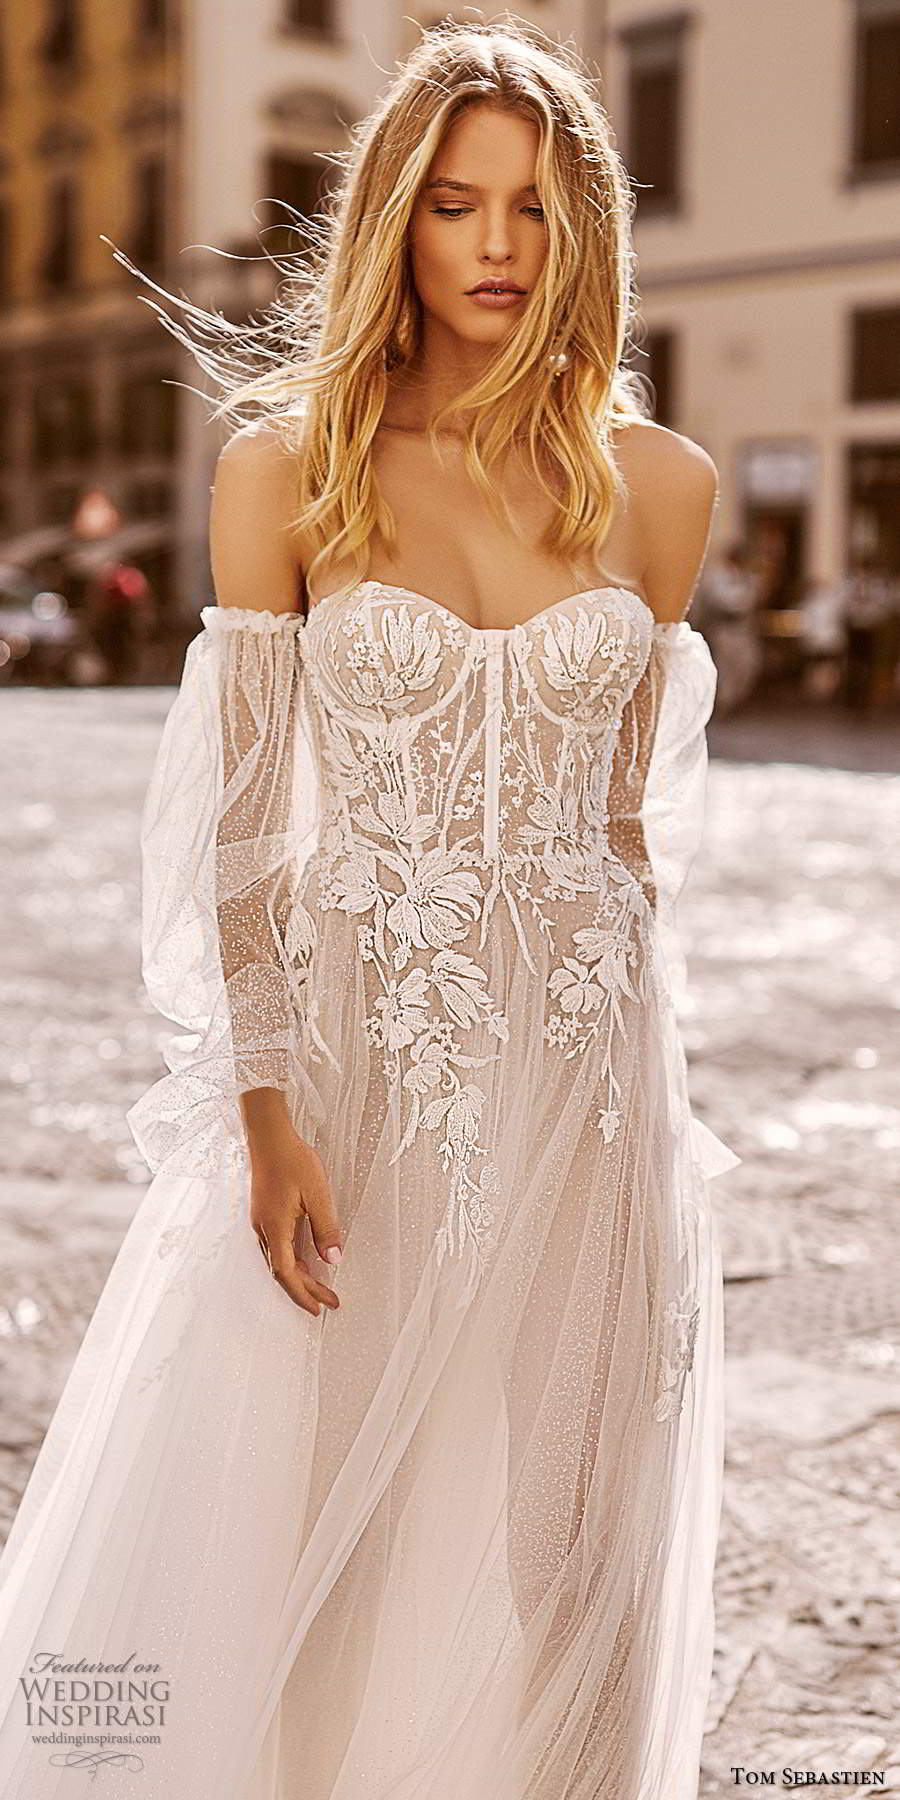 tom sebastien 2020 bridal sheer detached long puff sleeves strapless sweetheart fully embellished a line ball gown wedding dress chapel train (1) zv